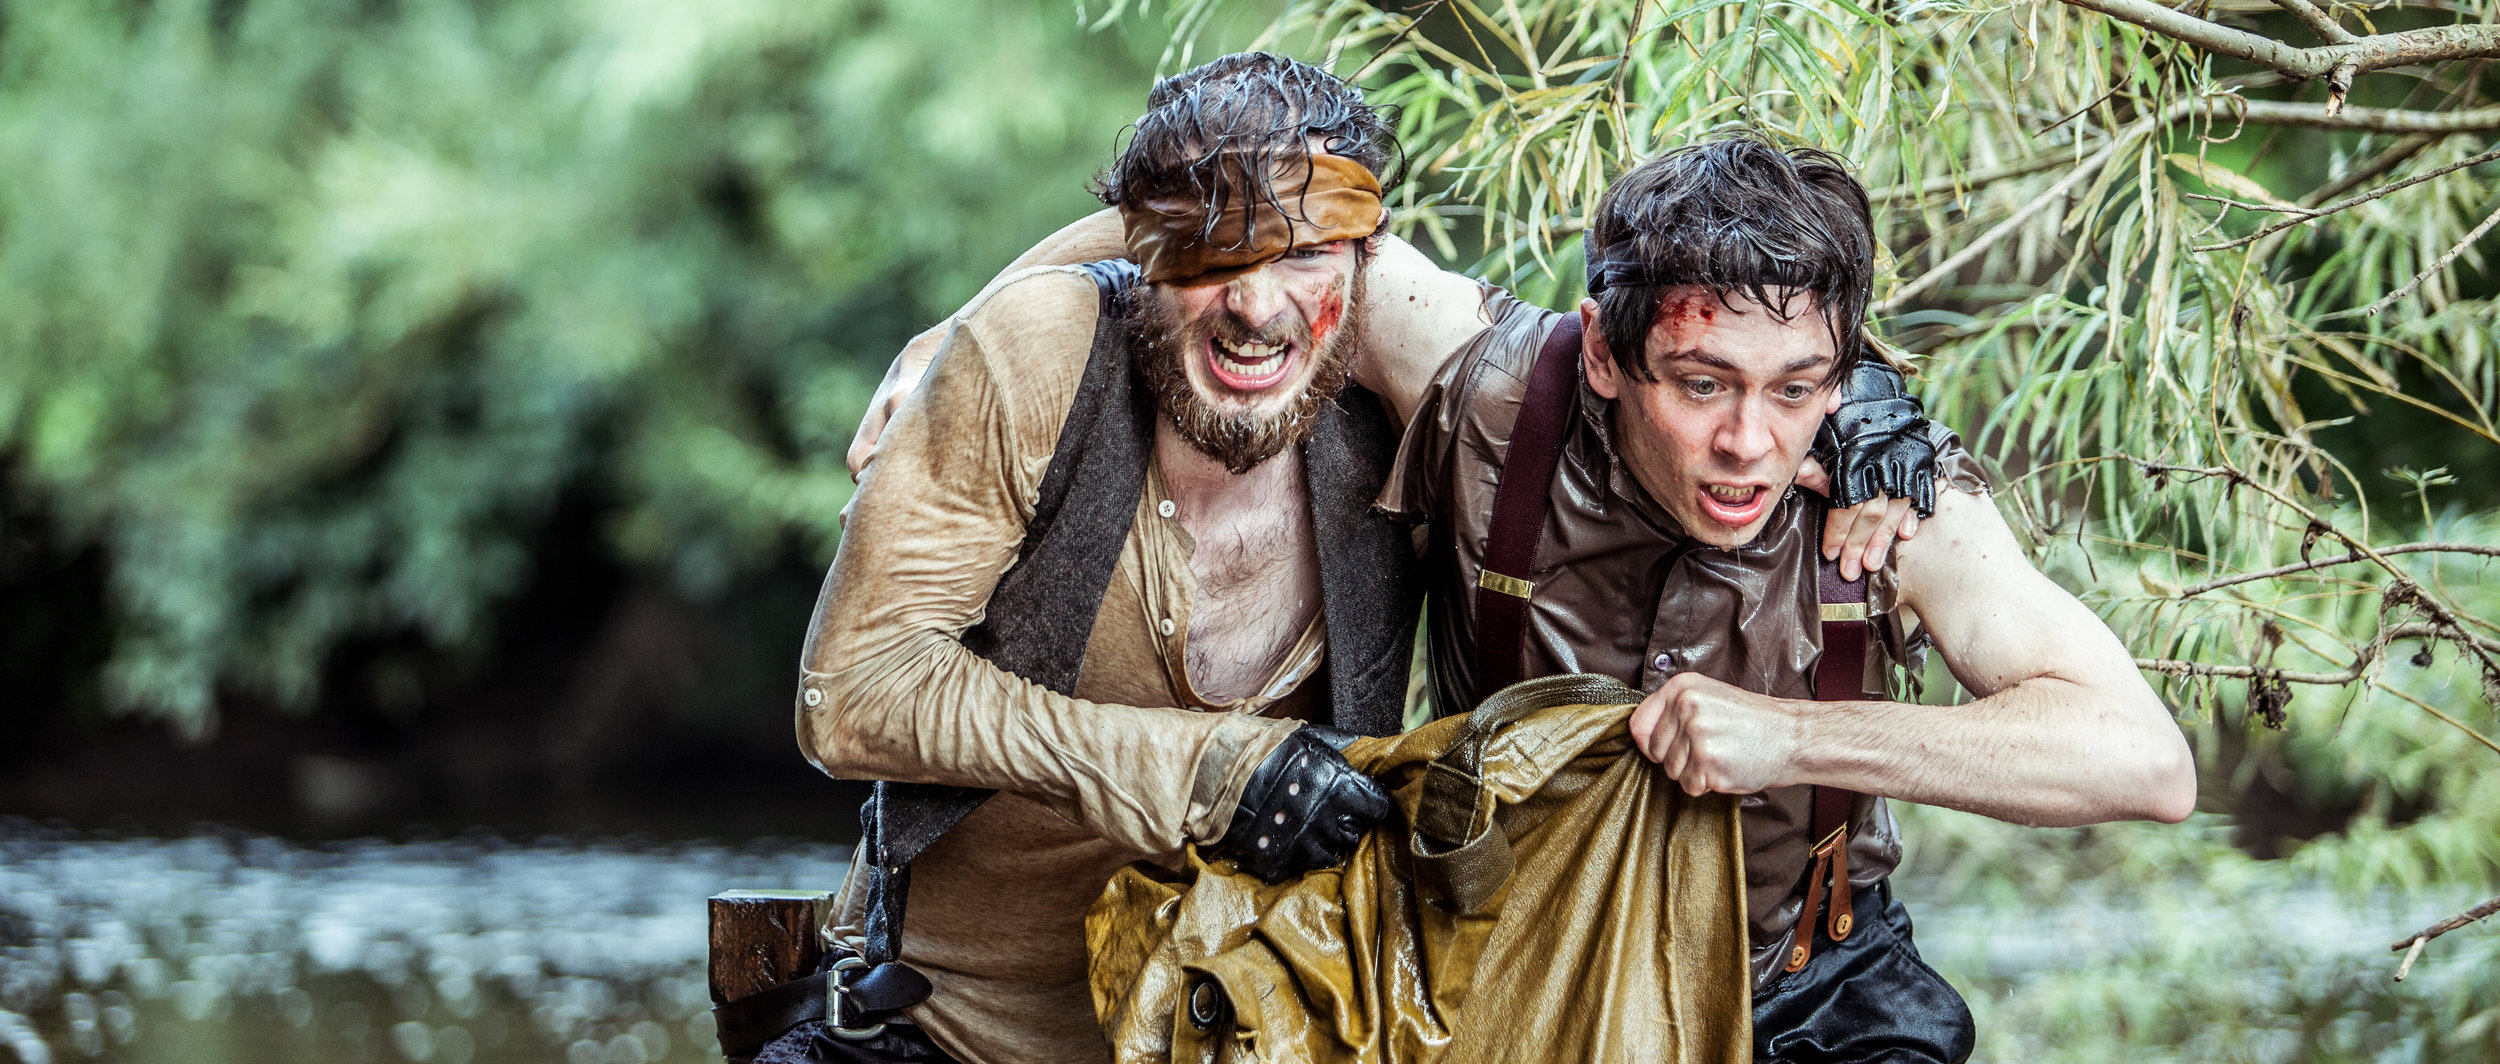 DSR - 'Clay' (Joe Newton) and 'Nugget' (Jerome Thompson) run through the shallows after being swept downriver-7.jpg